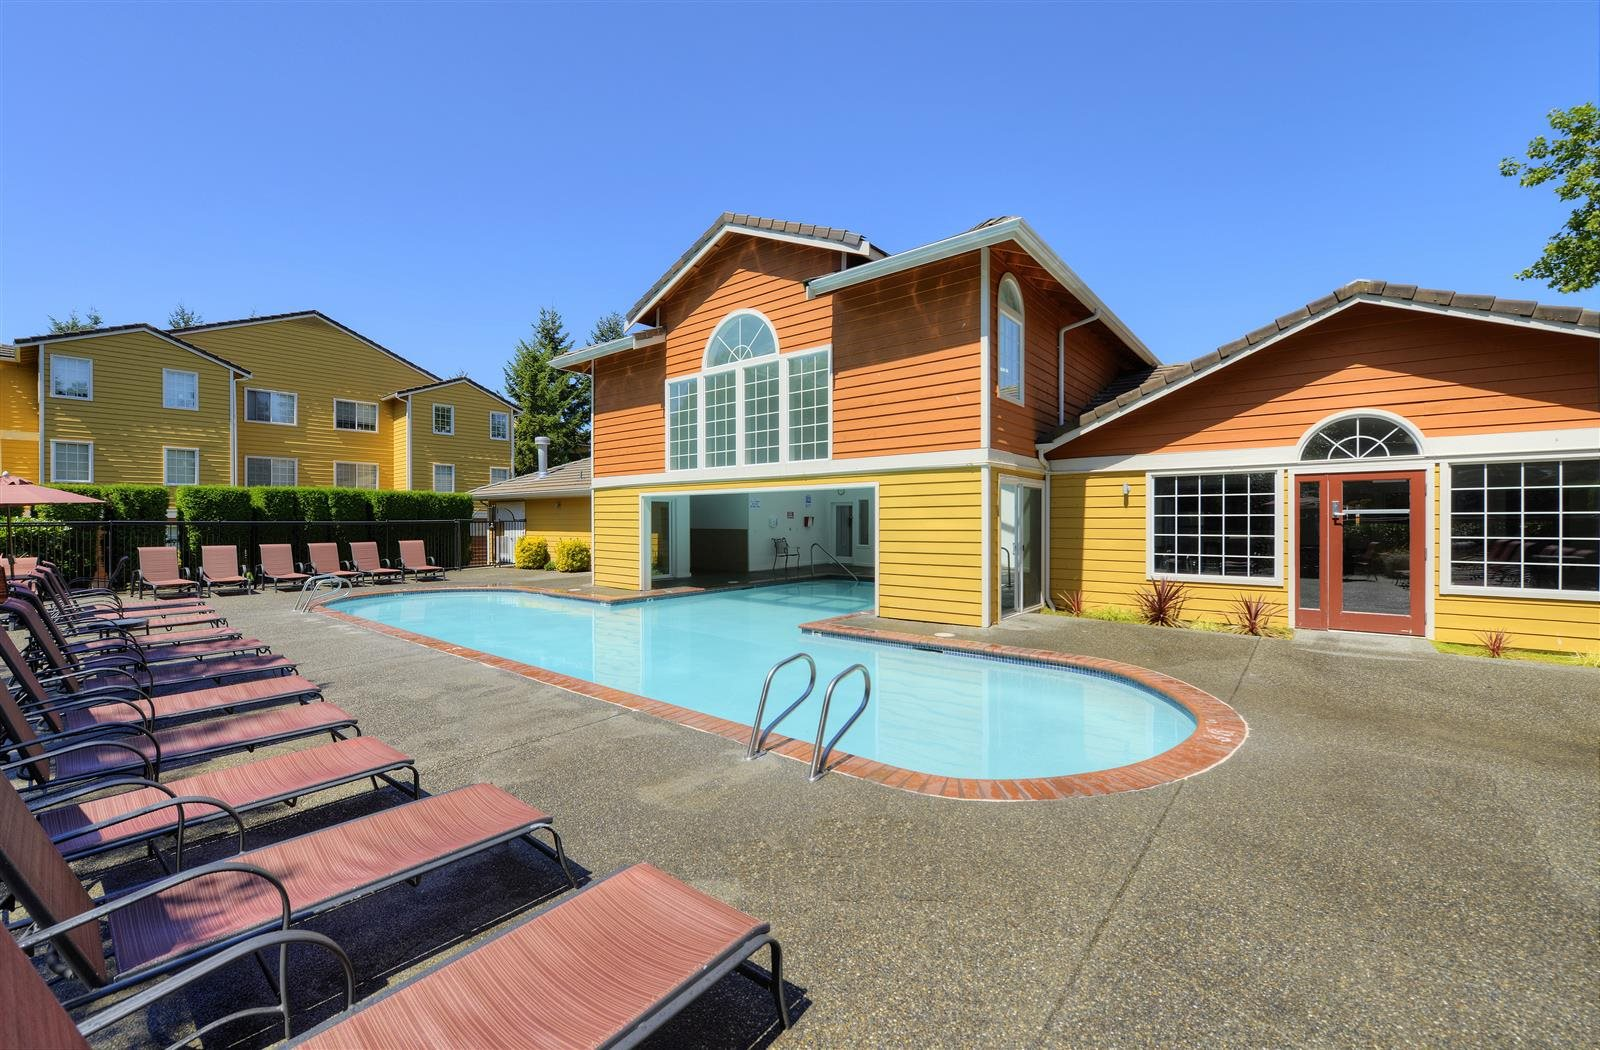 Relaxing Pool side area at Heronfield Apartments, Kirkland, WA, 98034